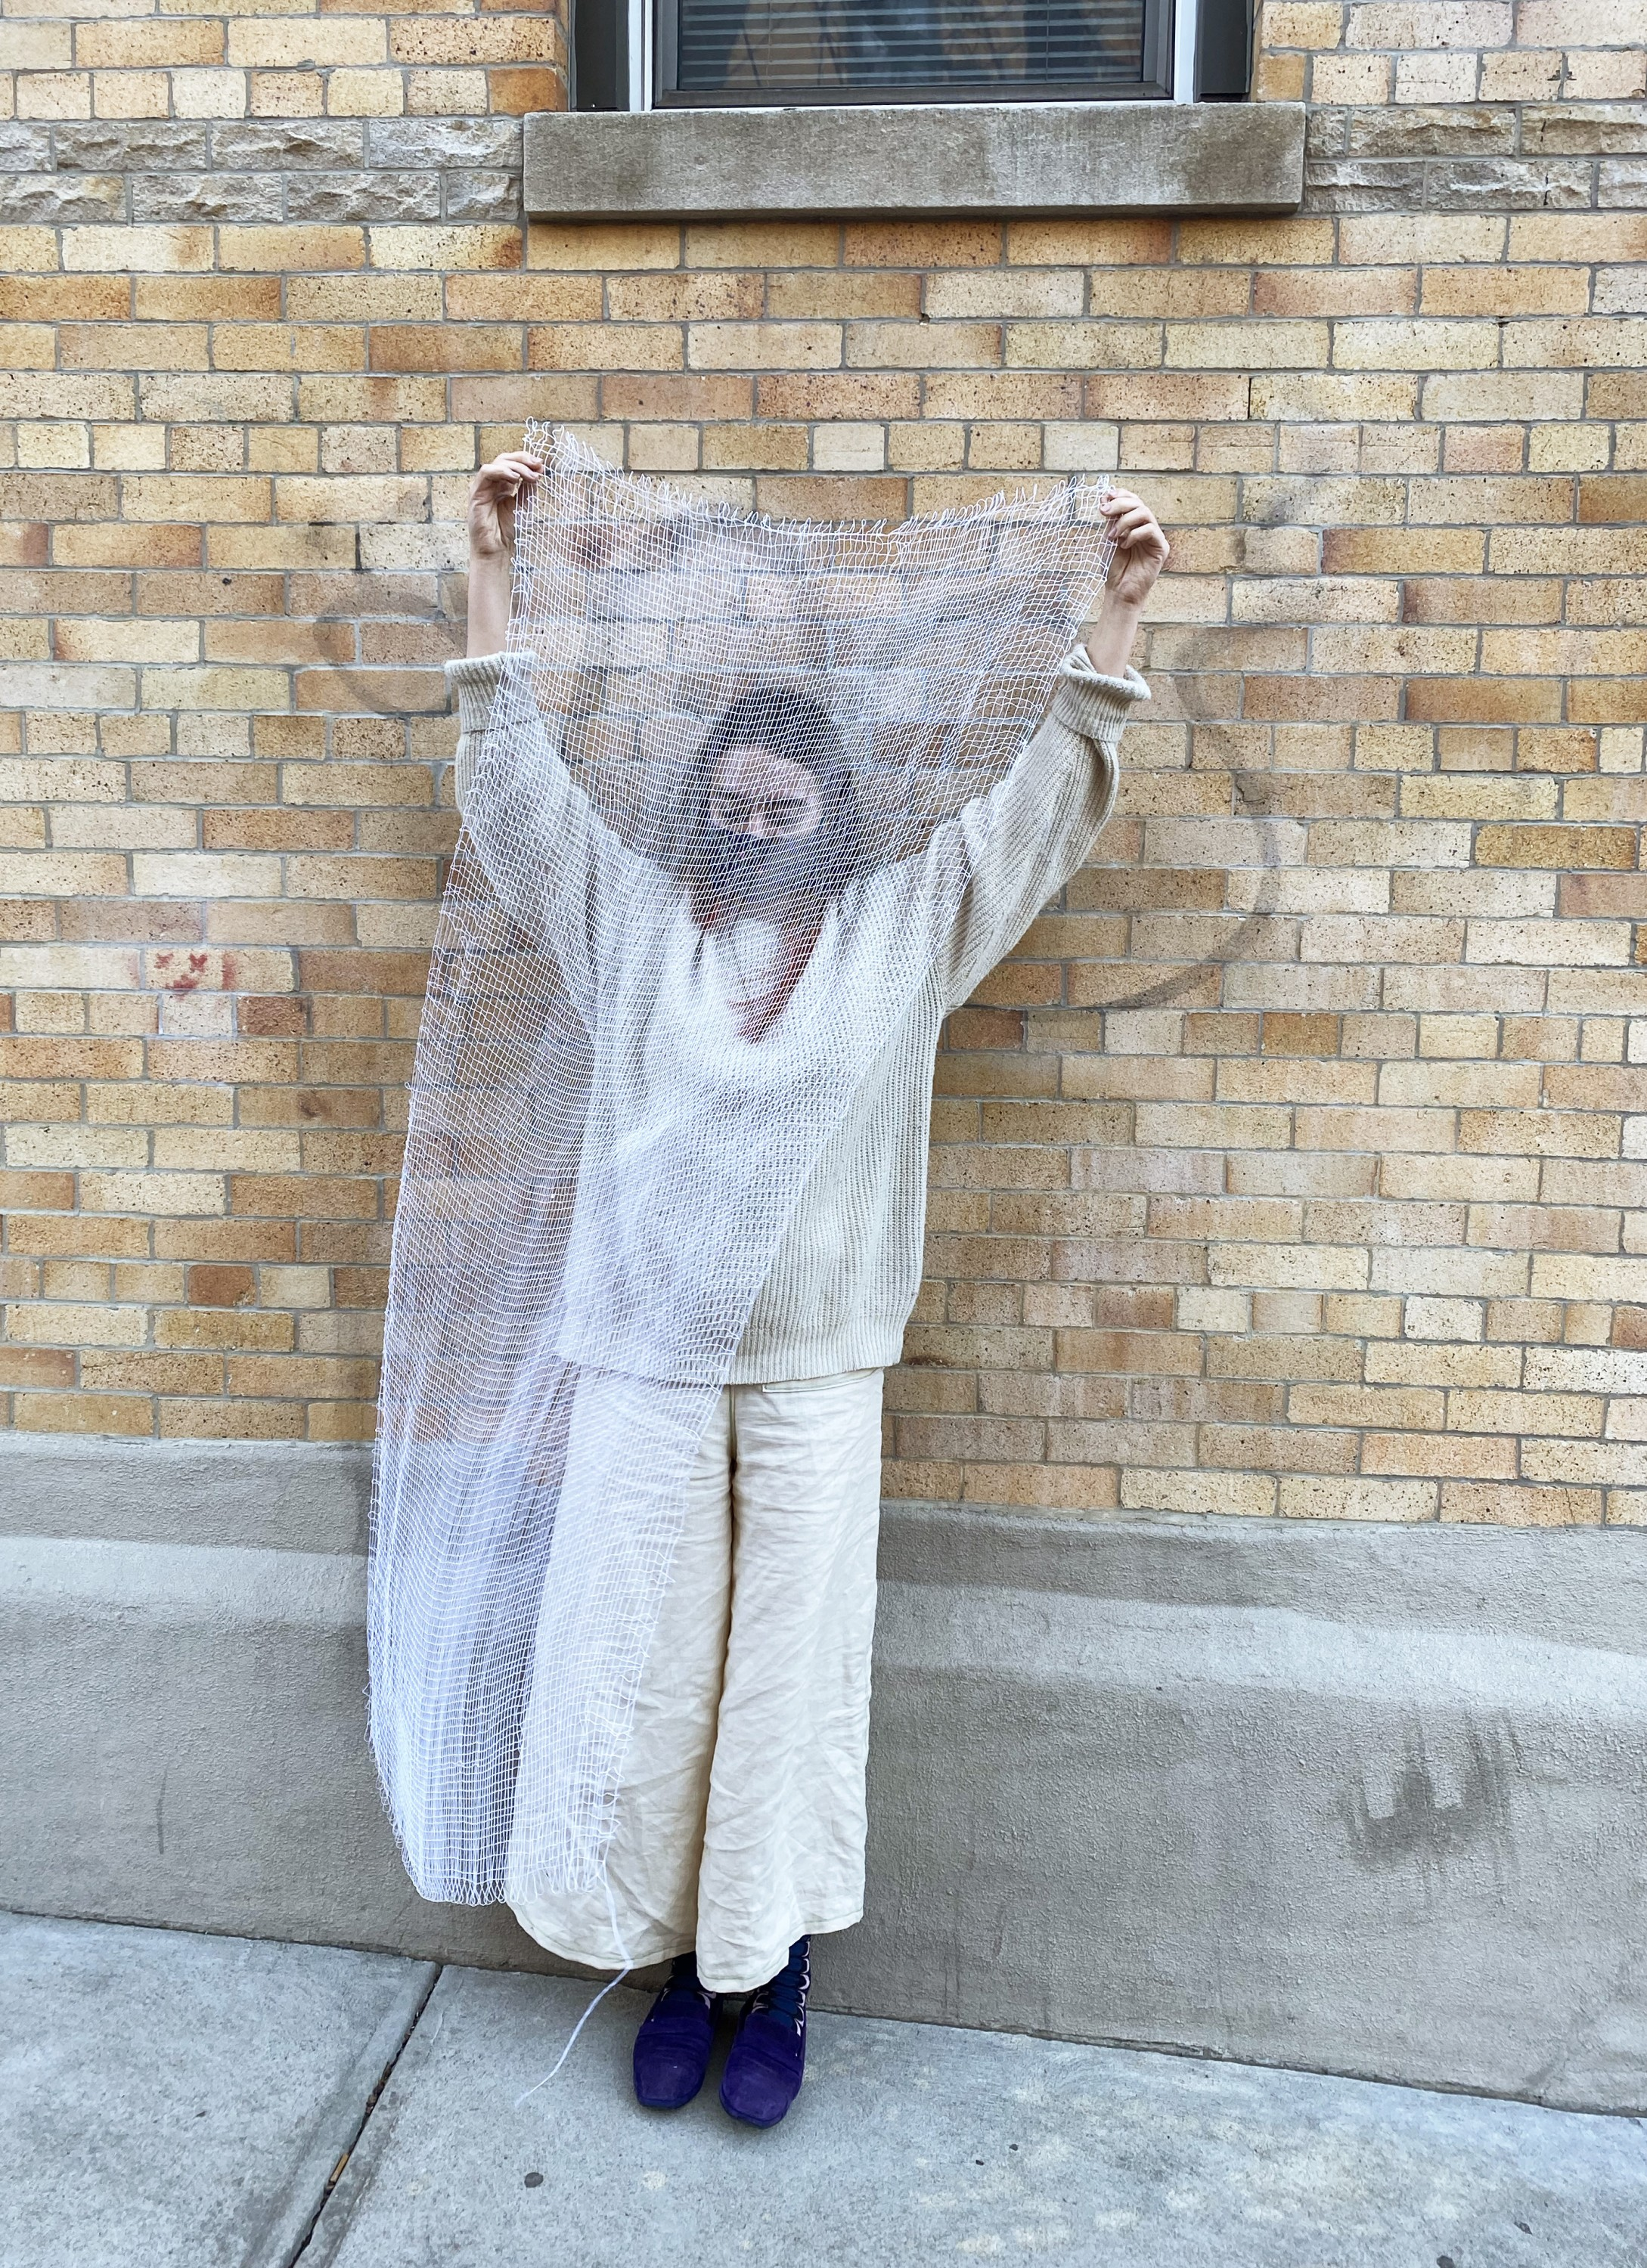 The artist holds loosely knit four selvage weaving in front of her, it is roughly her height and somewhat obscures her body. She stands in front of a brick building beneath an exterior window to demonstrate the size of the weaving in comparison to her own